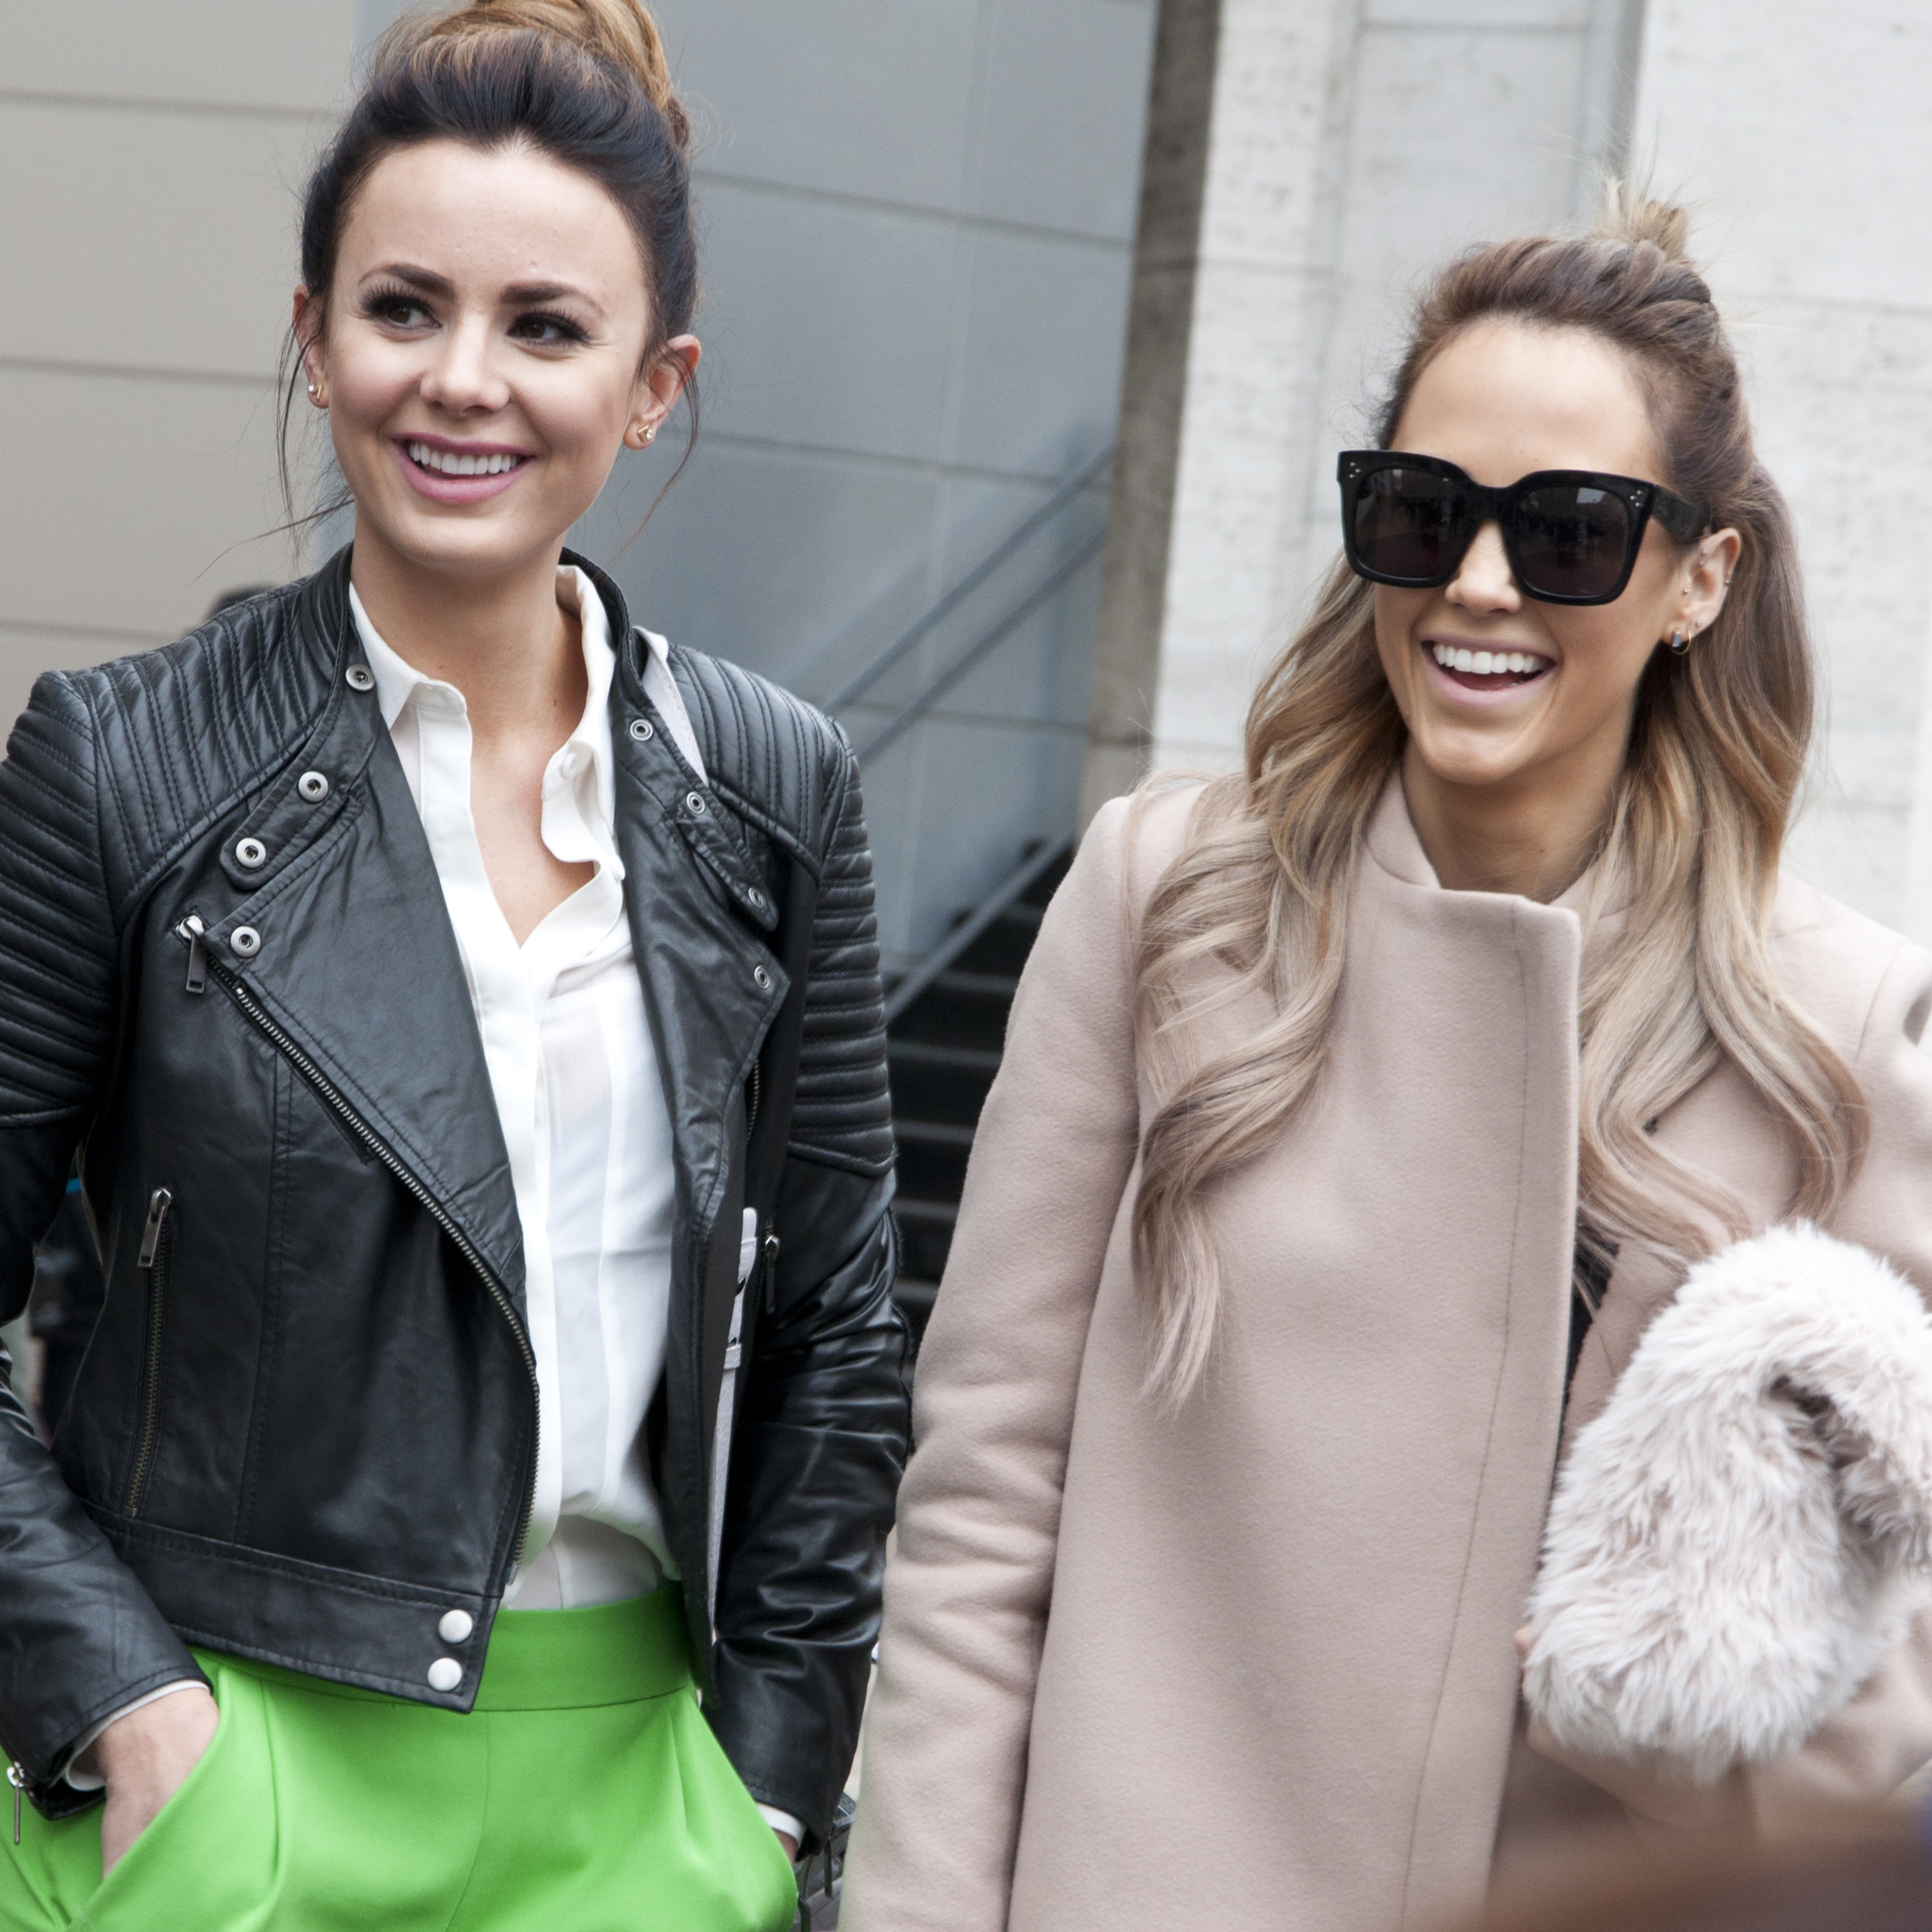 Sara Lynn Wardell (L) in French Connection / Botkier+  Megan Mitchell (R) in Celine (sunglasses) andZara (coat)